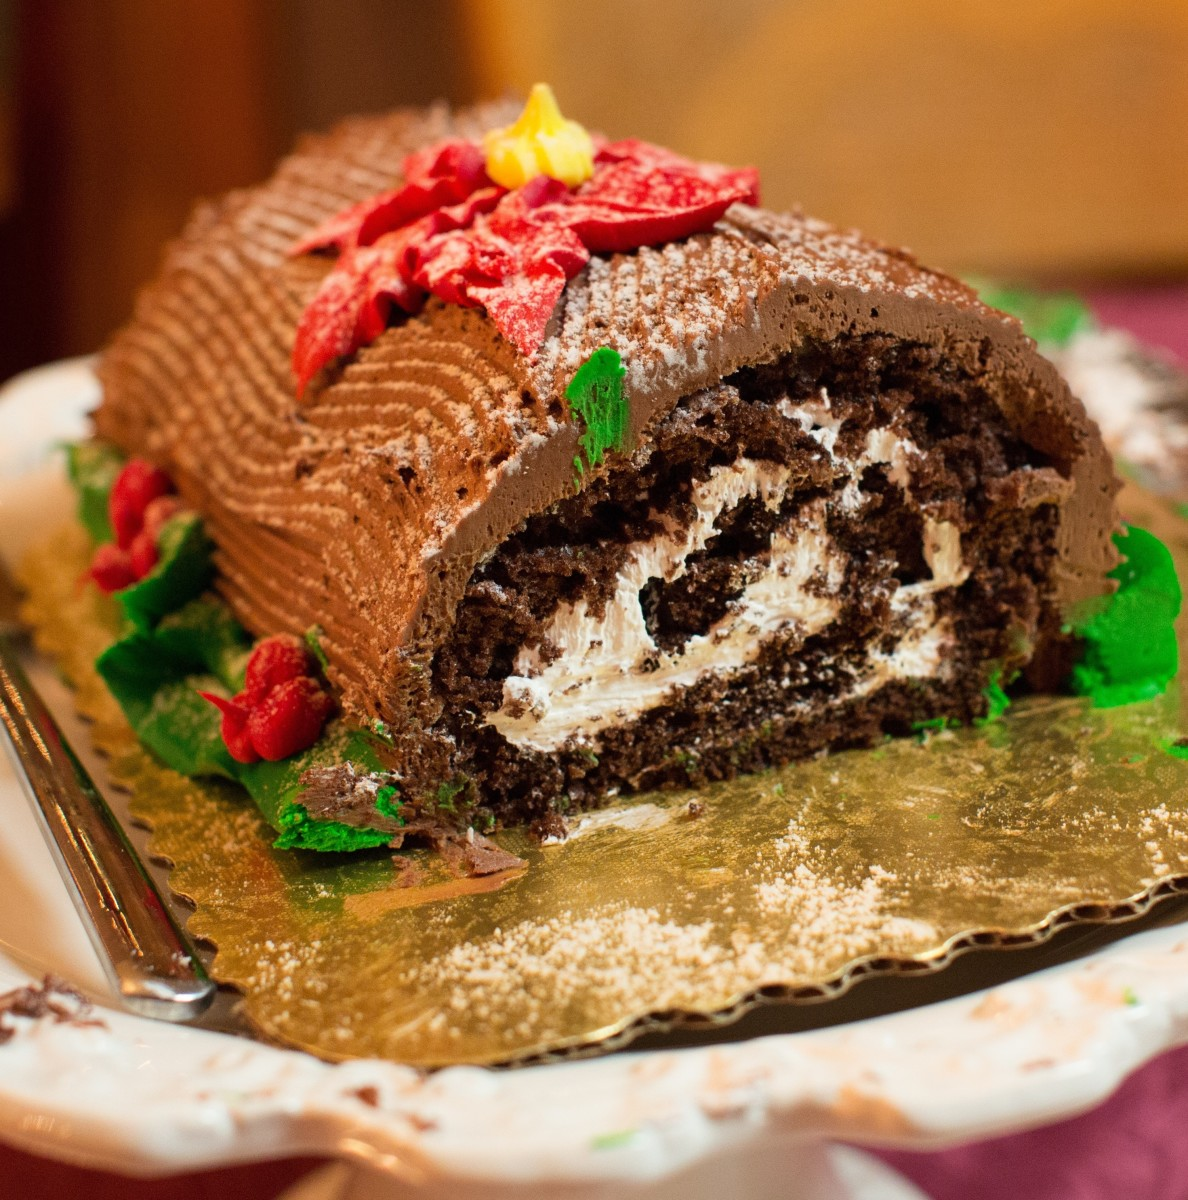 History of the Yule Log and How to Make Your Own